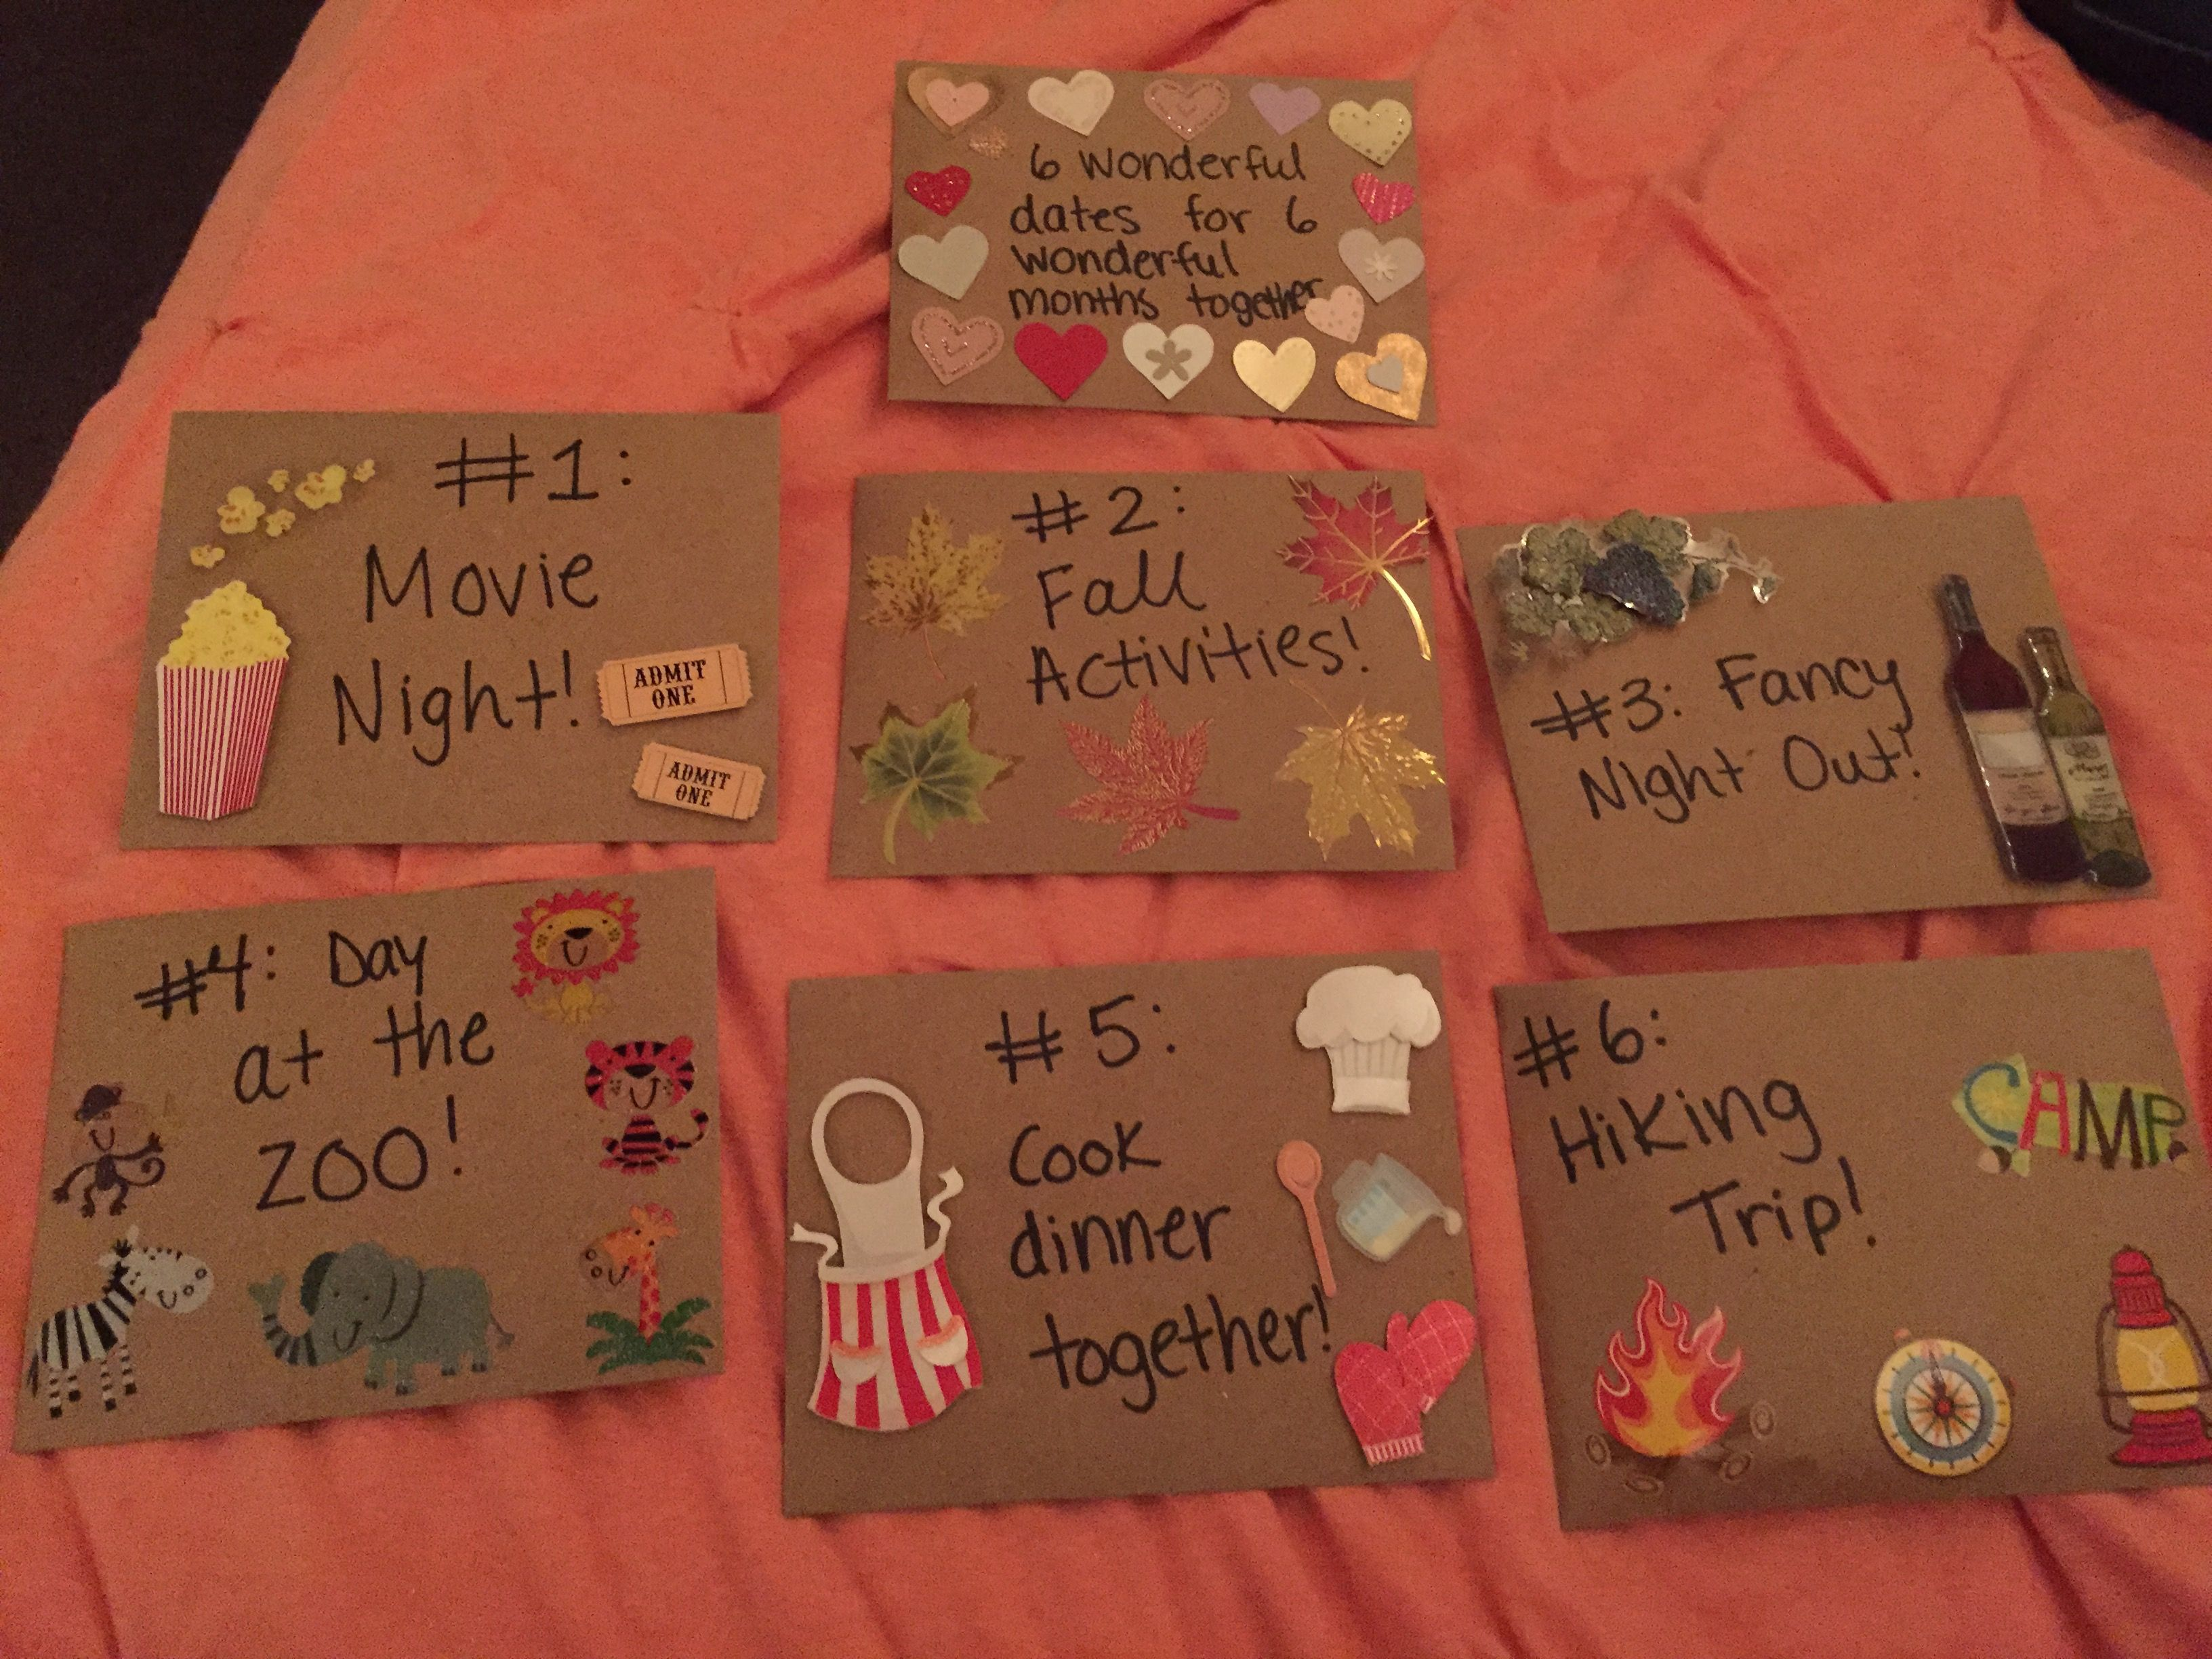 6 month anniversary gift for my boyfriend 6 dates for 6 wonderful